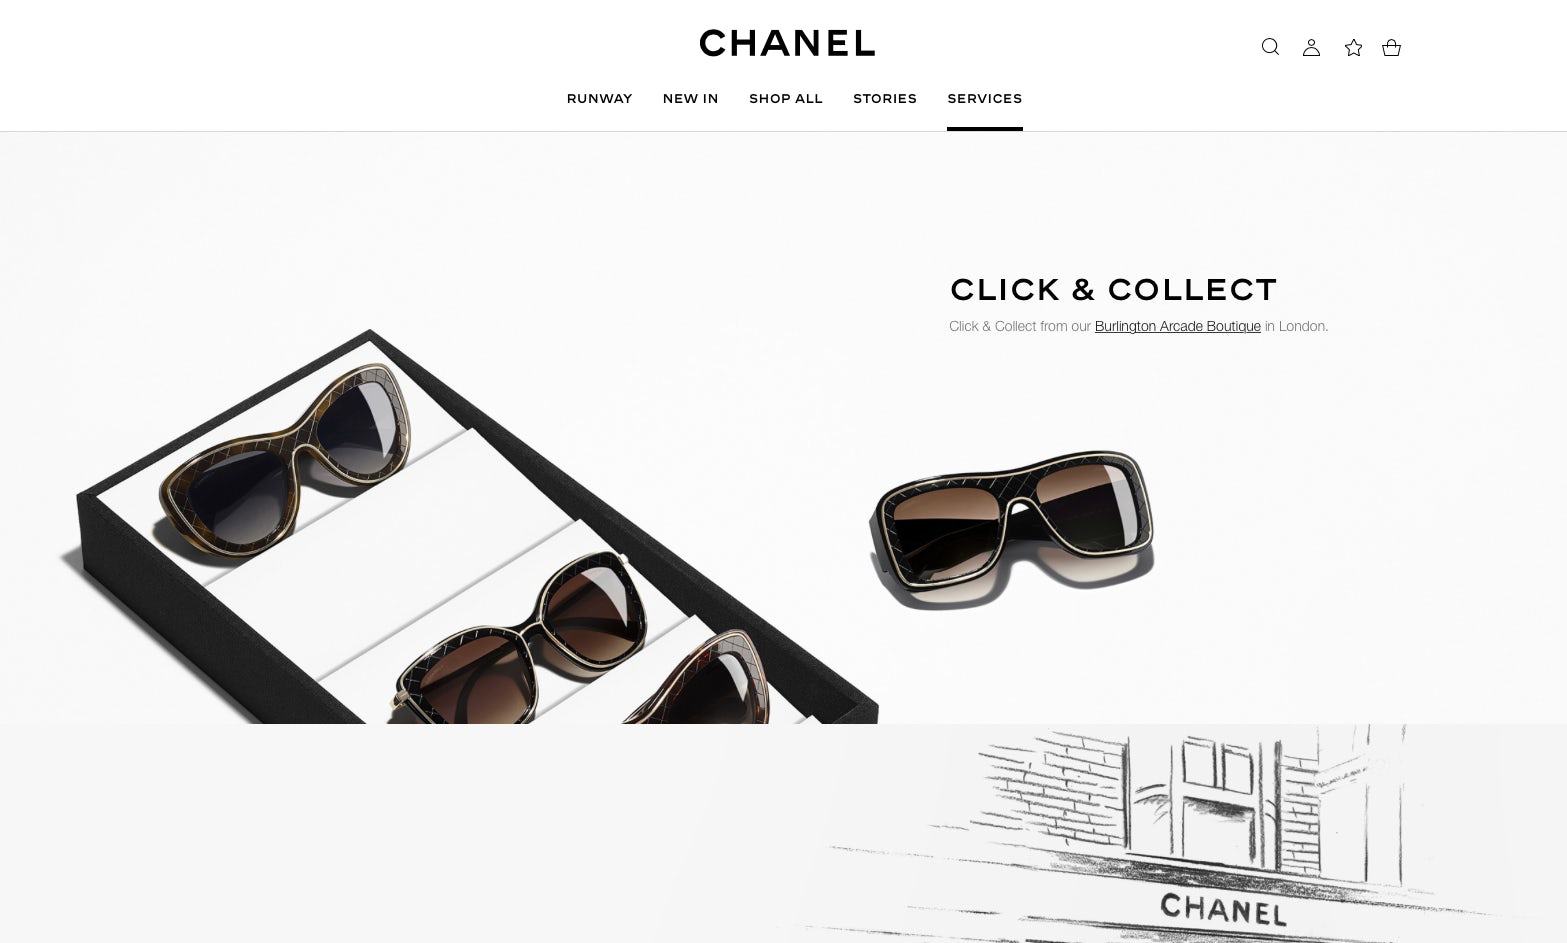 Chanel - Click & Collect Strategy (on a limited selection of items)